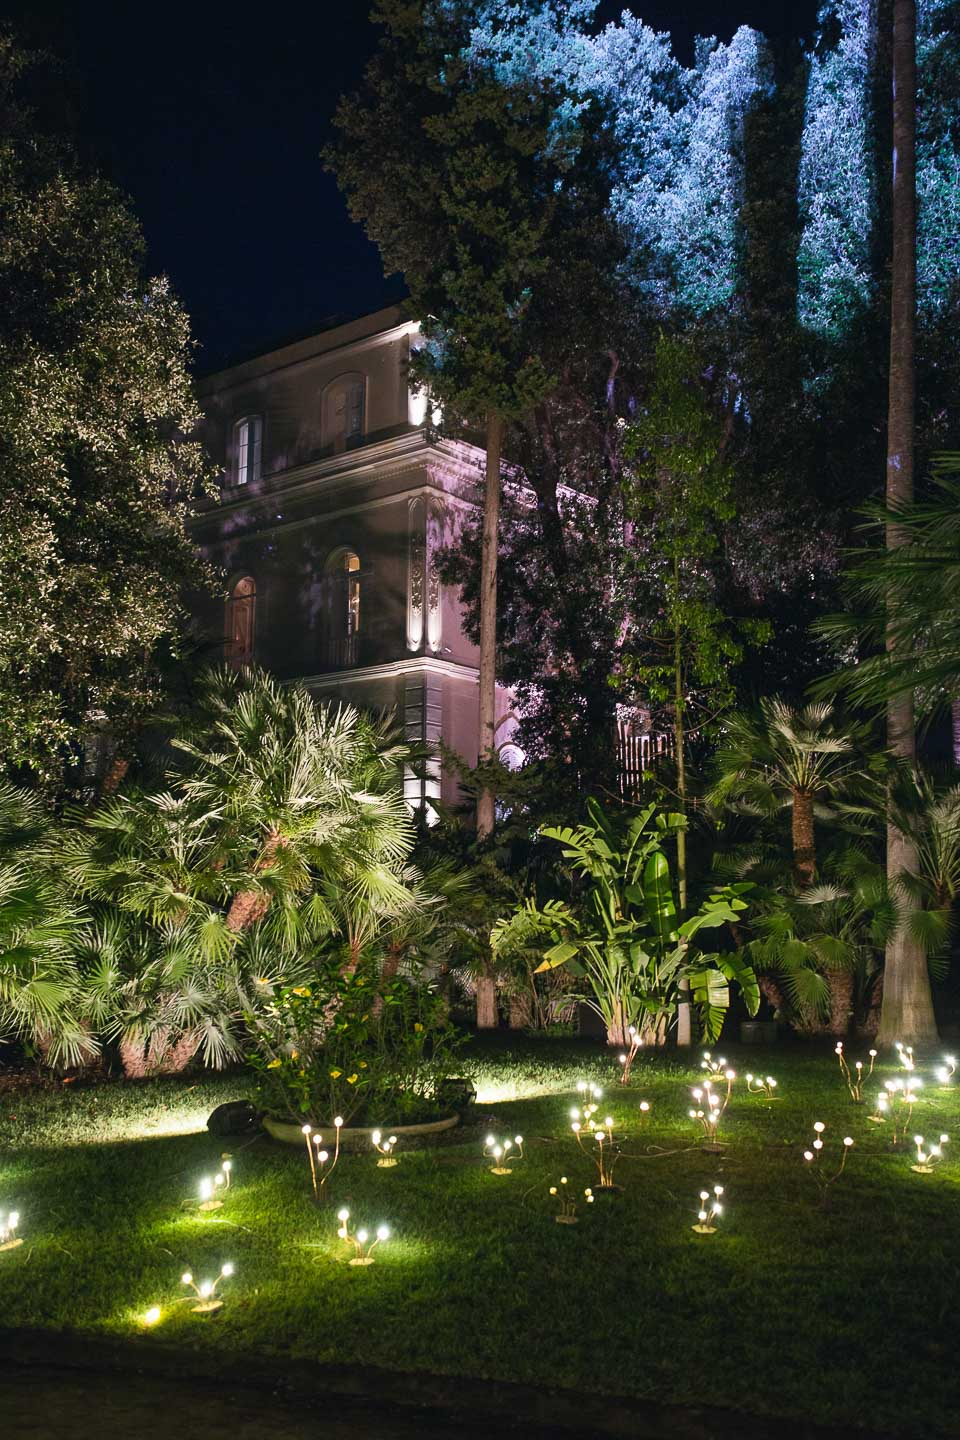 Villa Astor luxury property available rent rental desitination weddings events party evening entertainment evening light music best venue Italy